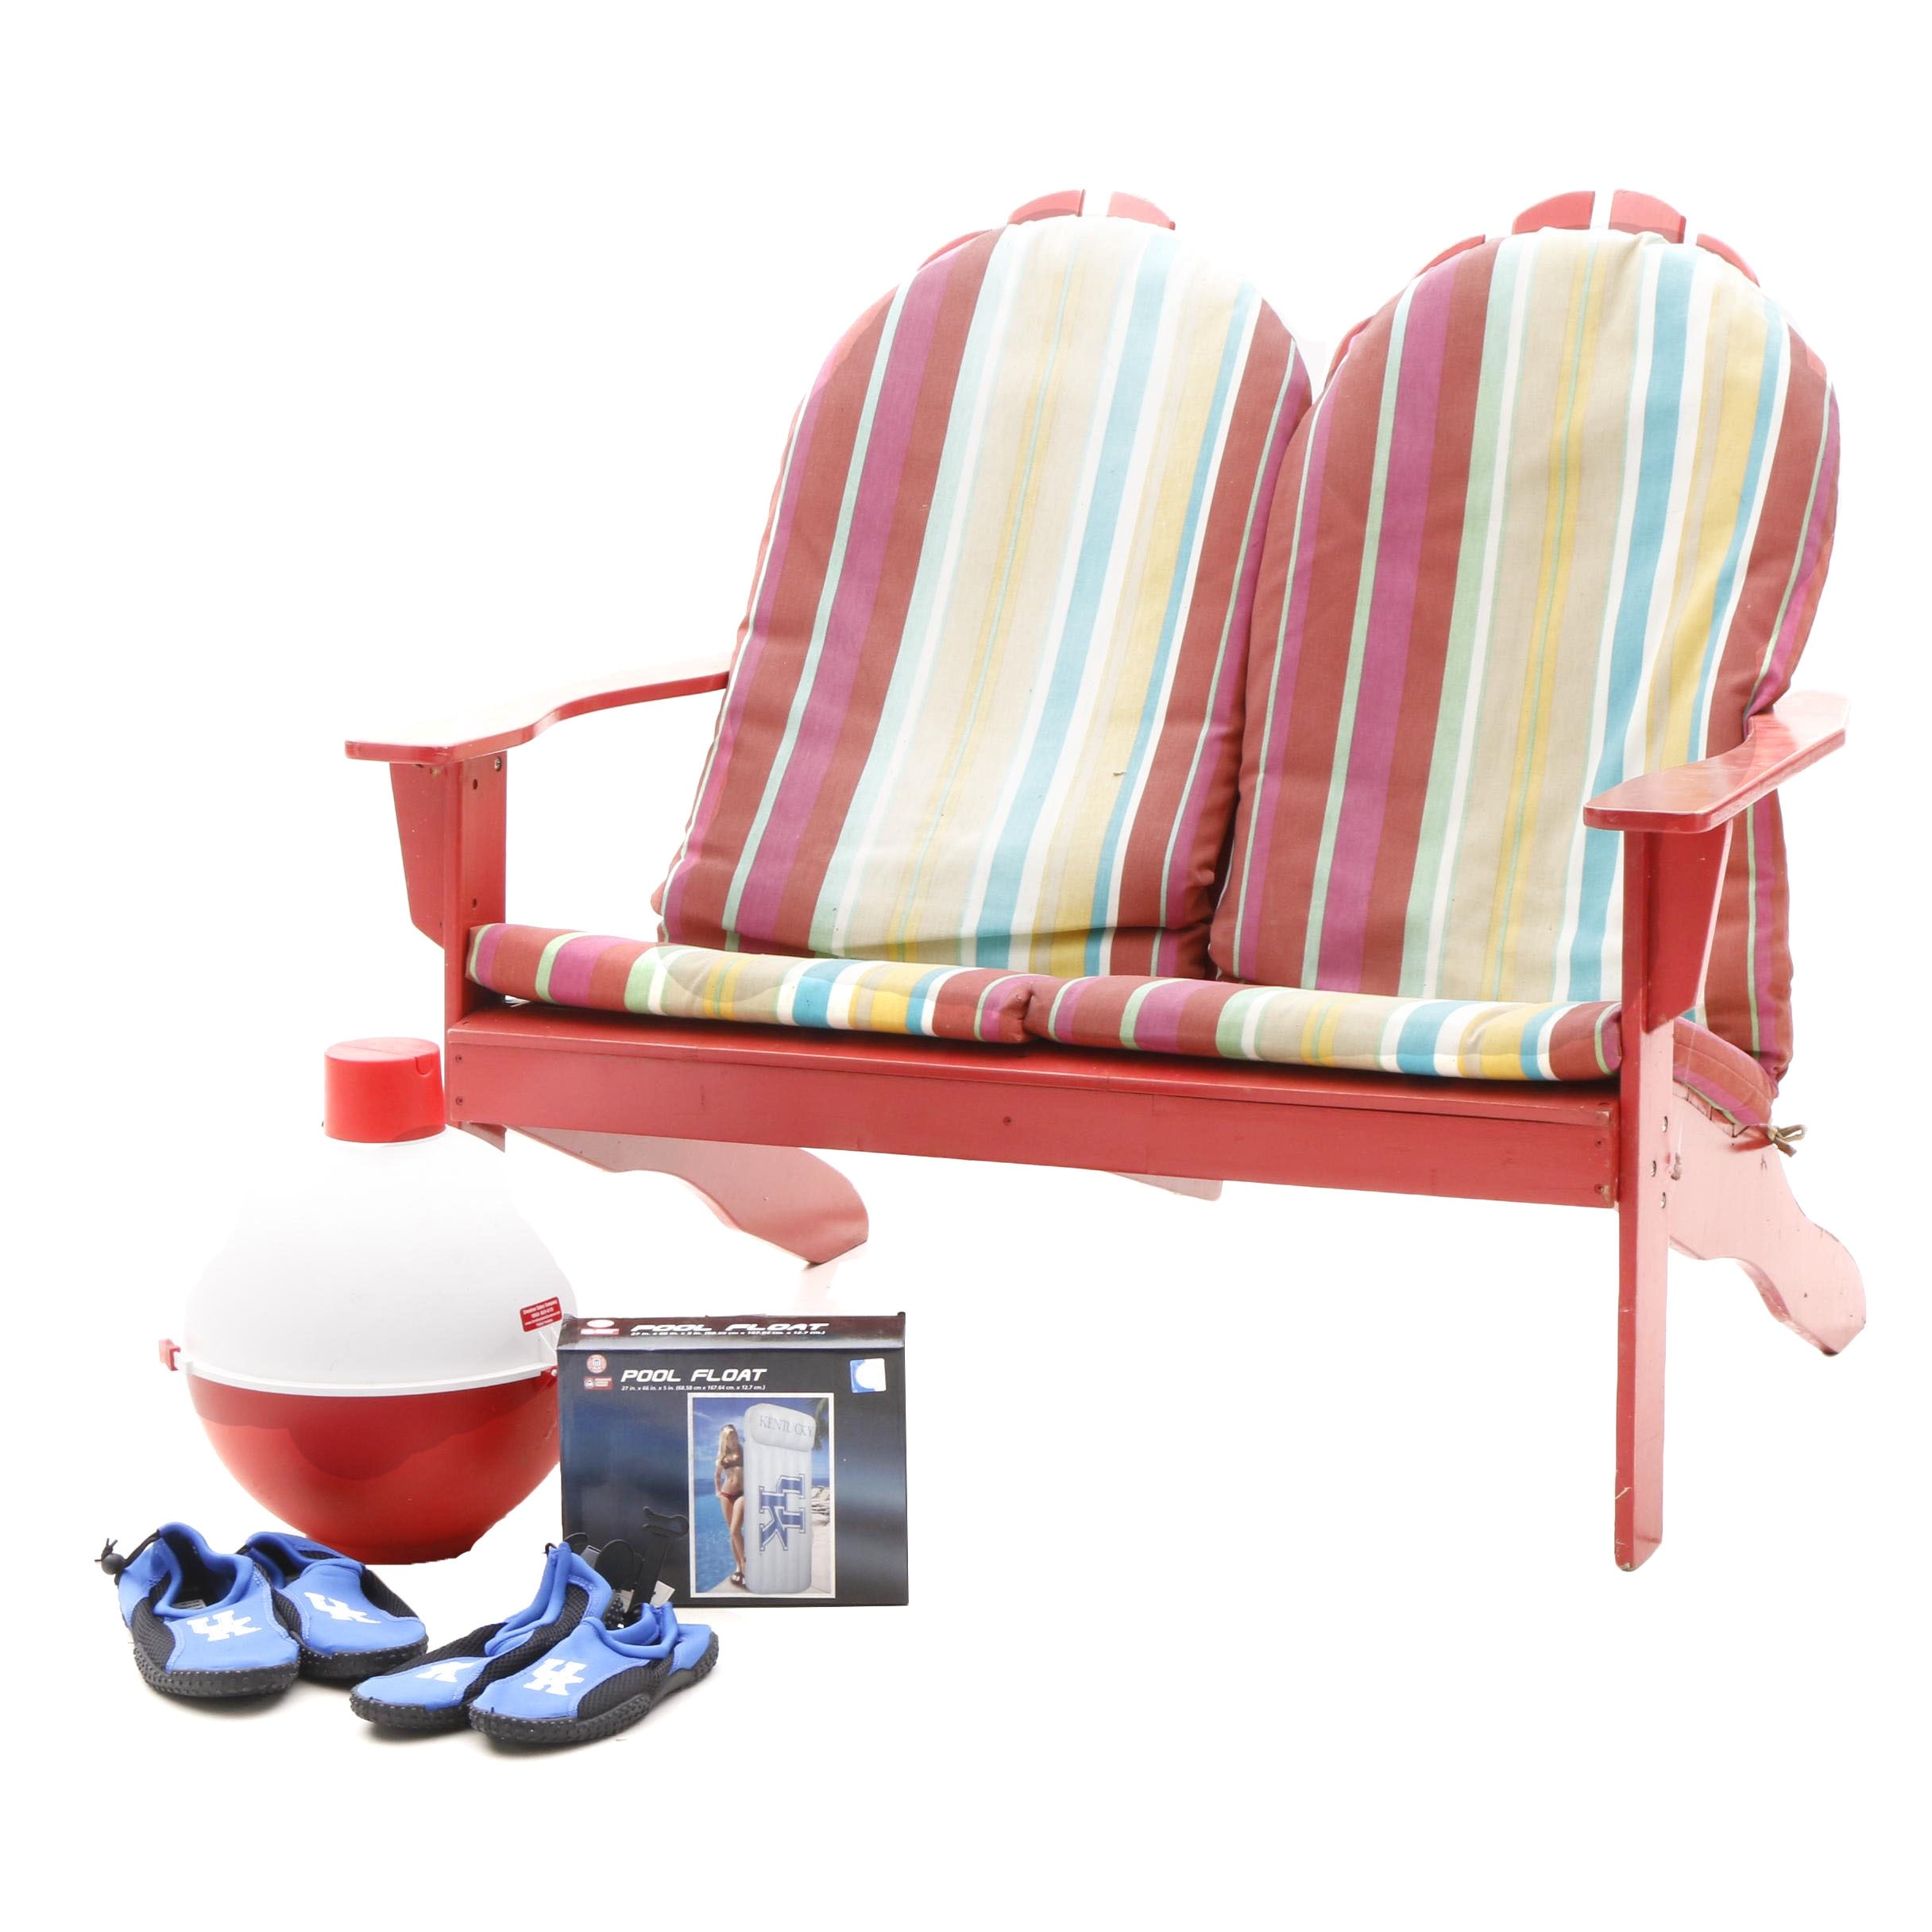 Adirondack Style Bench, Big Bobber Floating Cooler and UK Collectibles